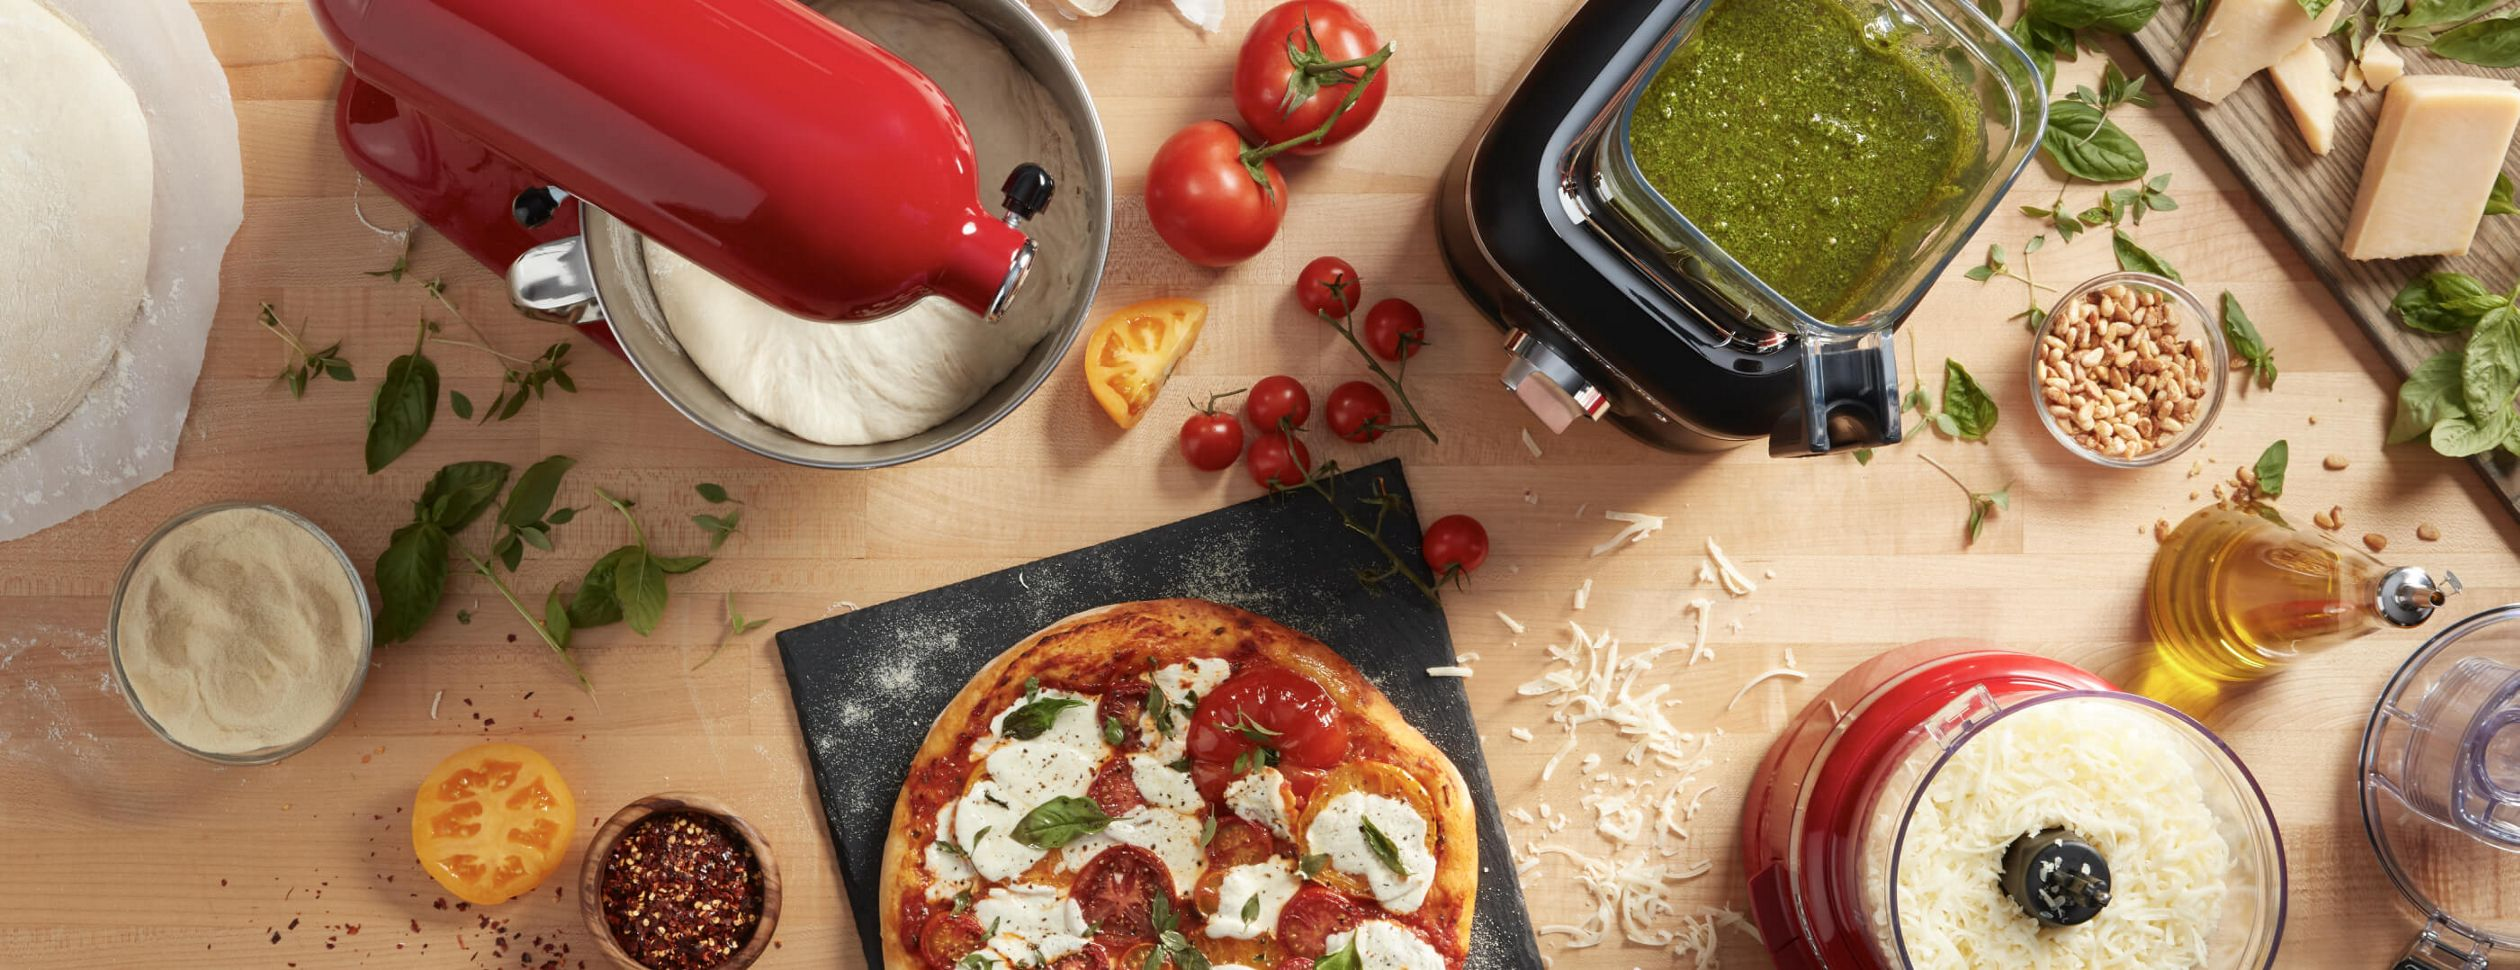 A table full of fresh ingredients with KitchenAid countertop appliances making pizza.